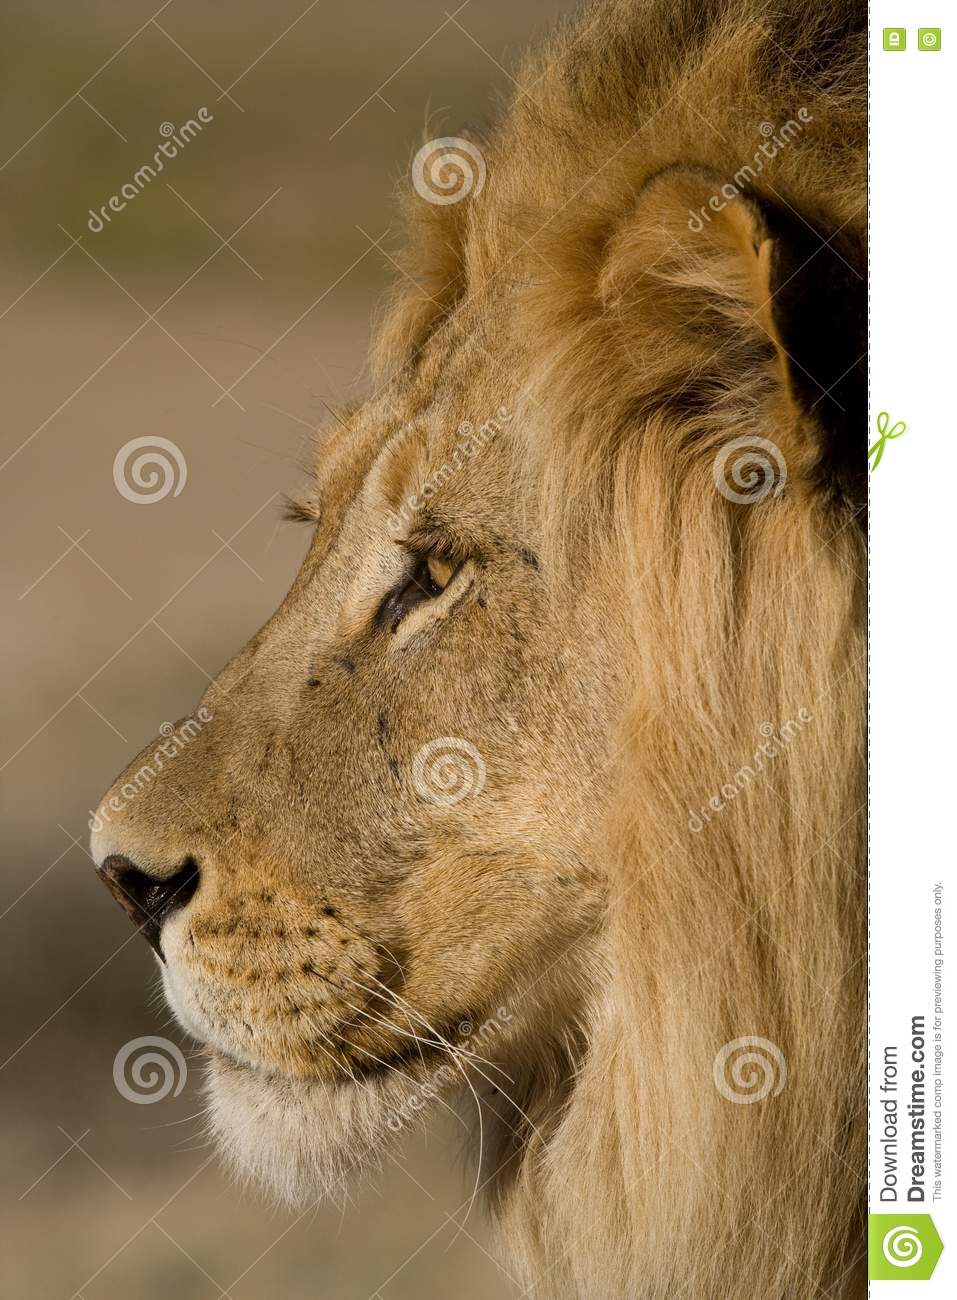 Close-up Of A Male Lion Face Stock Photo - Image: 20914010